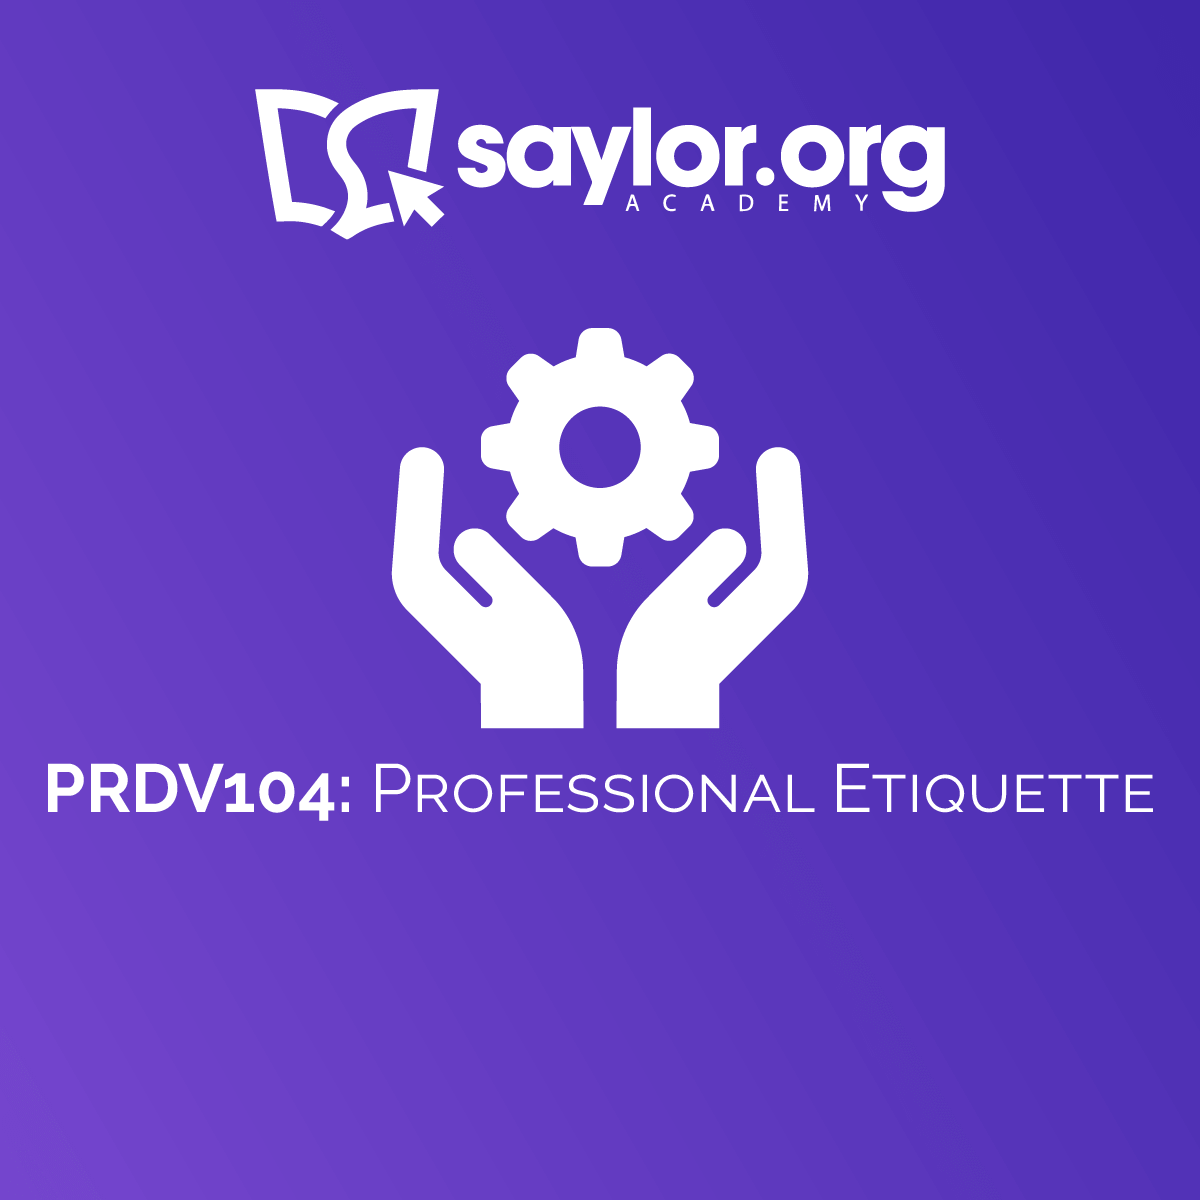 PRDV104: Professional Etiquette, Topic: Unit 2: Workplace